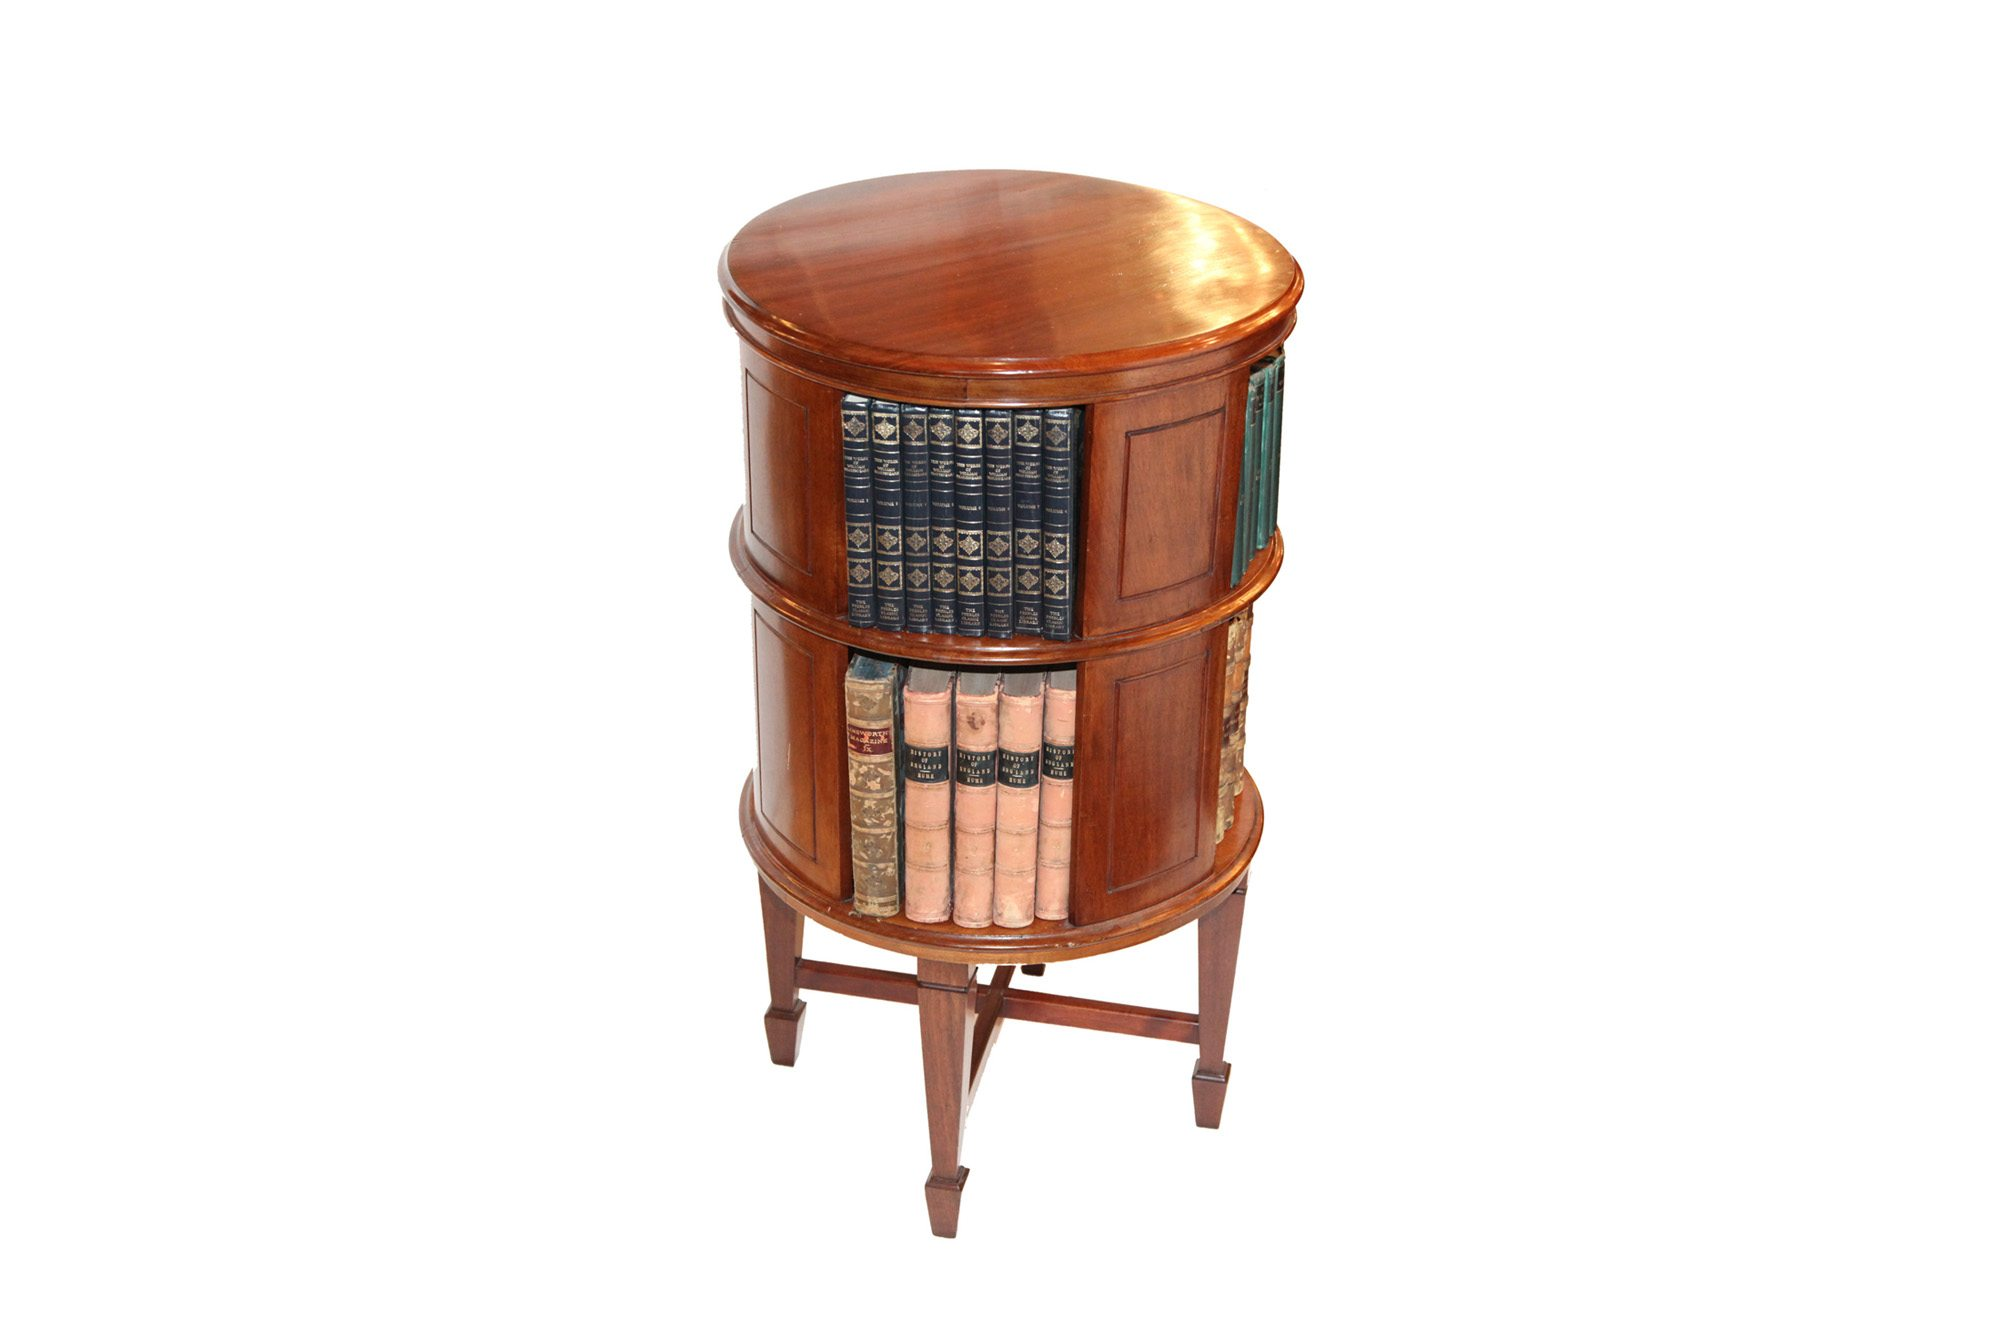 room living bookcase inadam units shop furniture revolving yew top or leather tier mahogany bookcases shelving scbc